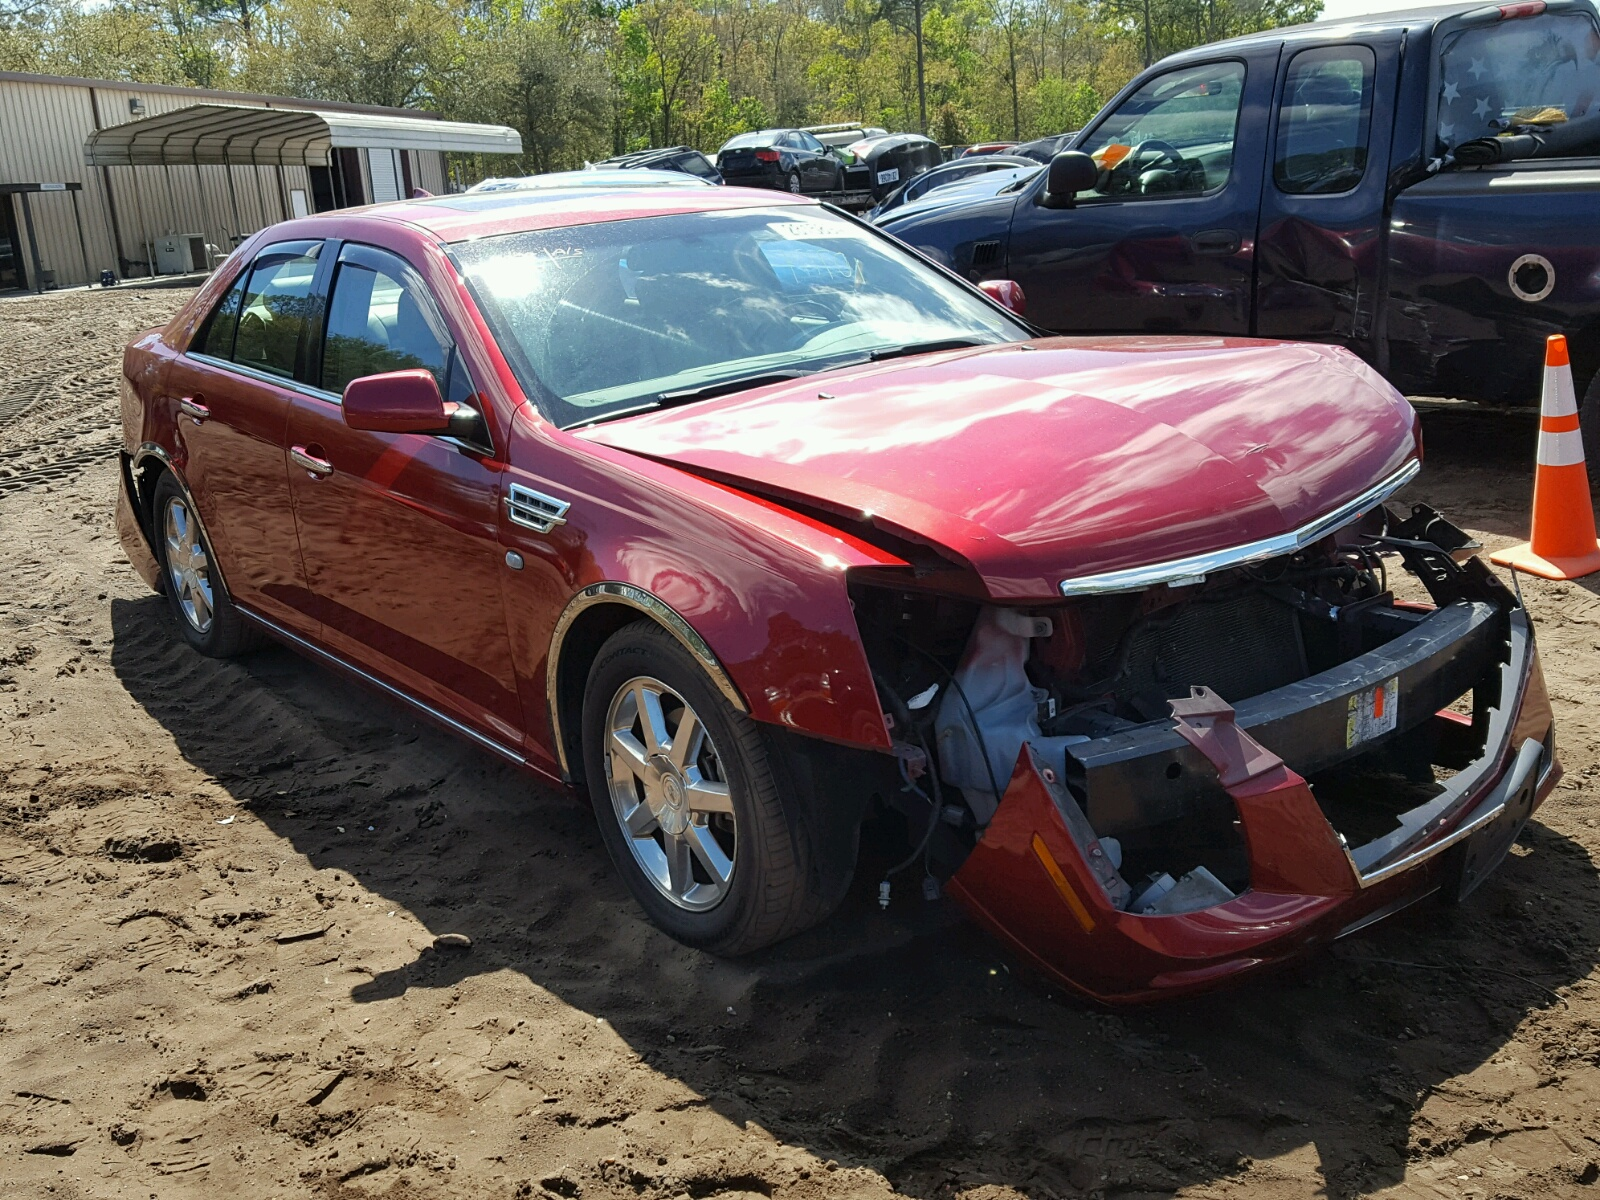 lebanon cars at tn cadillac lot sts copart sale for